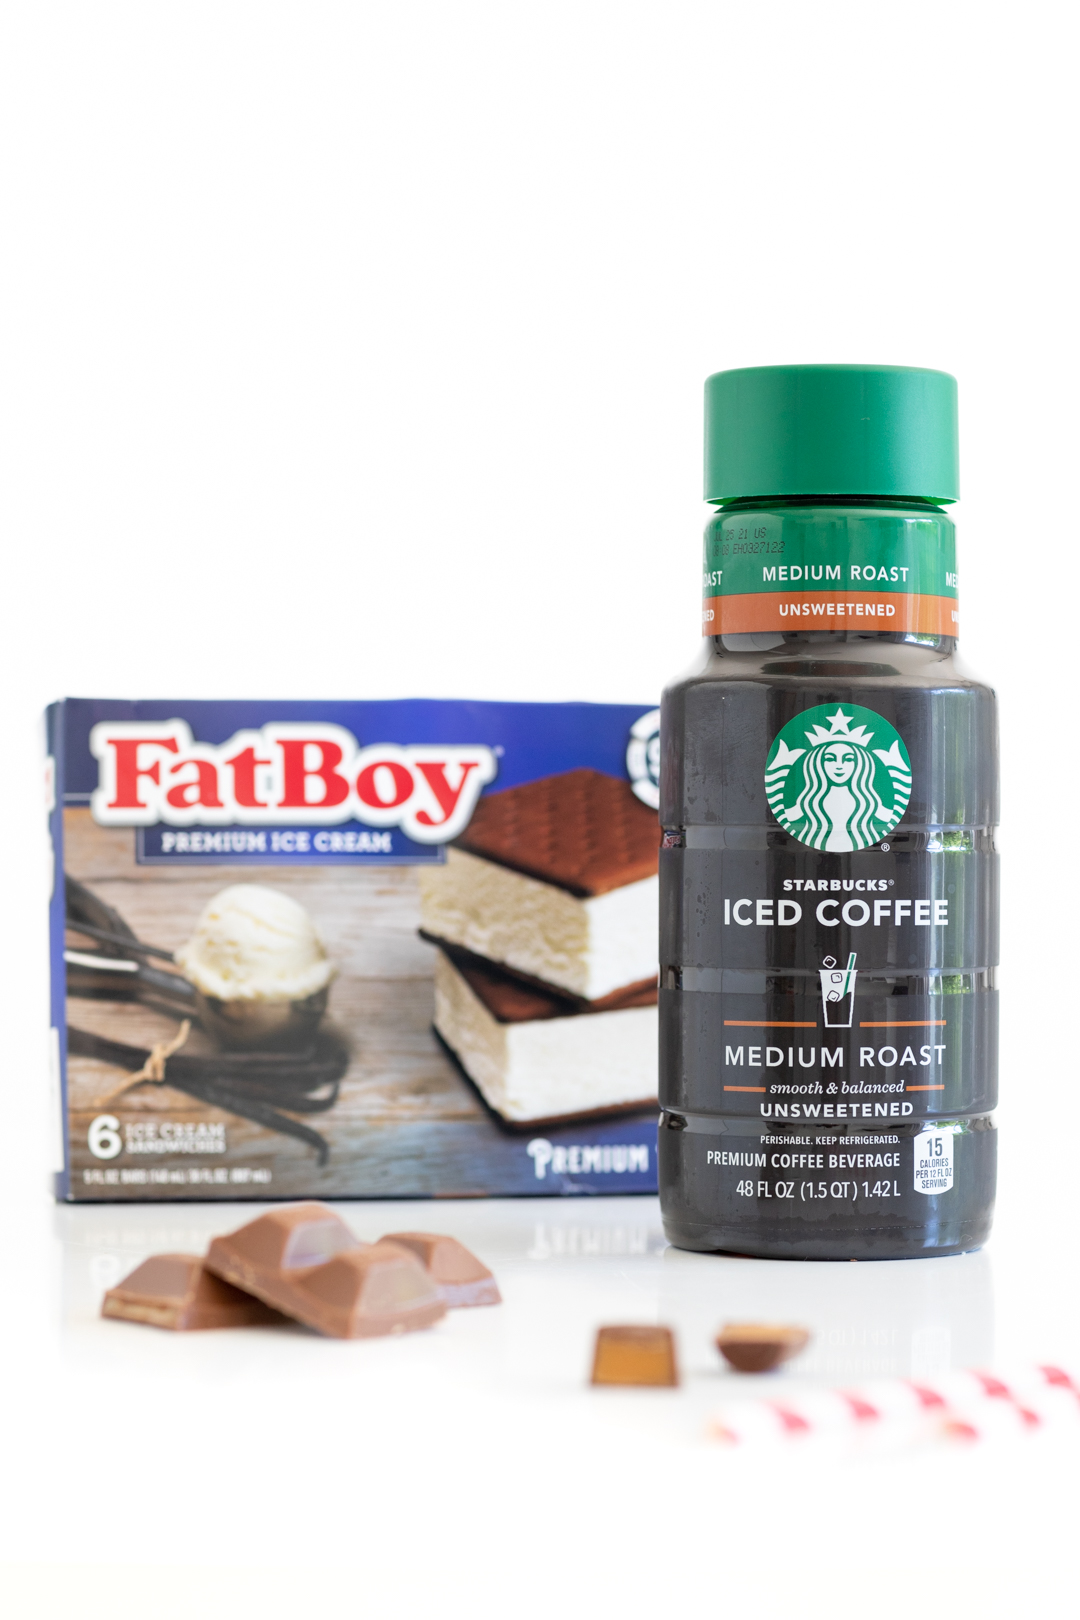 starbucks store bought iced coffee and fat boy ice cream sandwiches in the product box